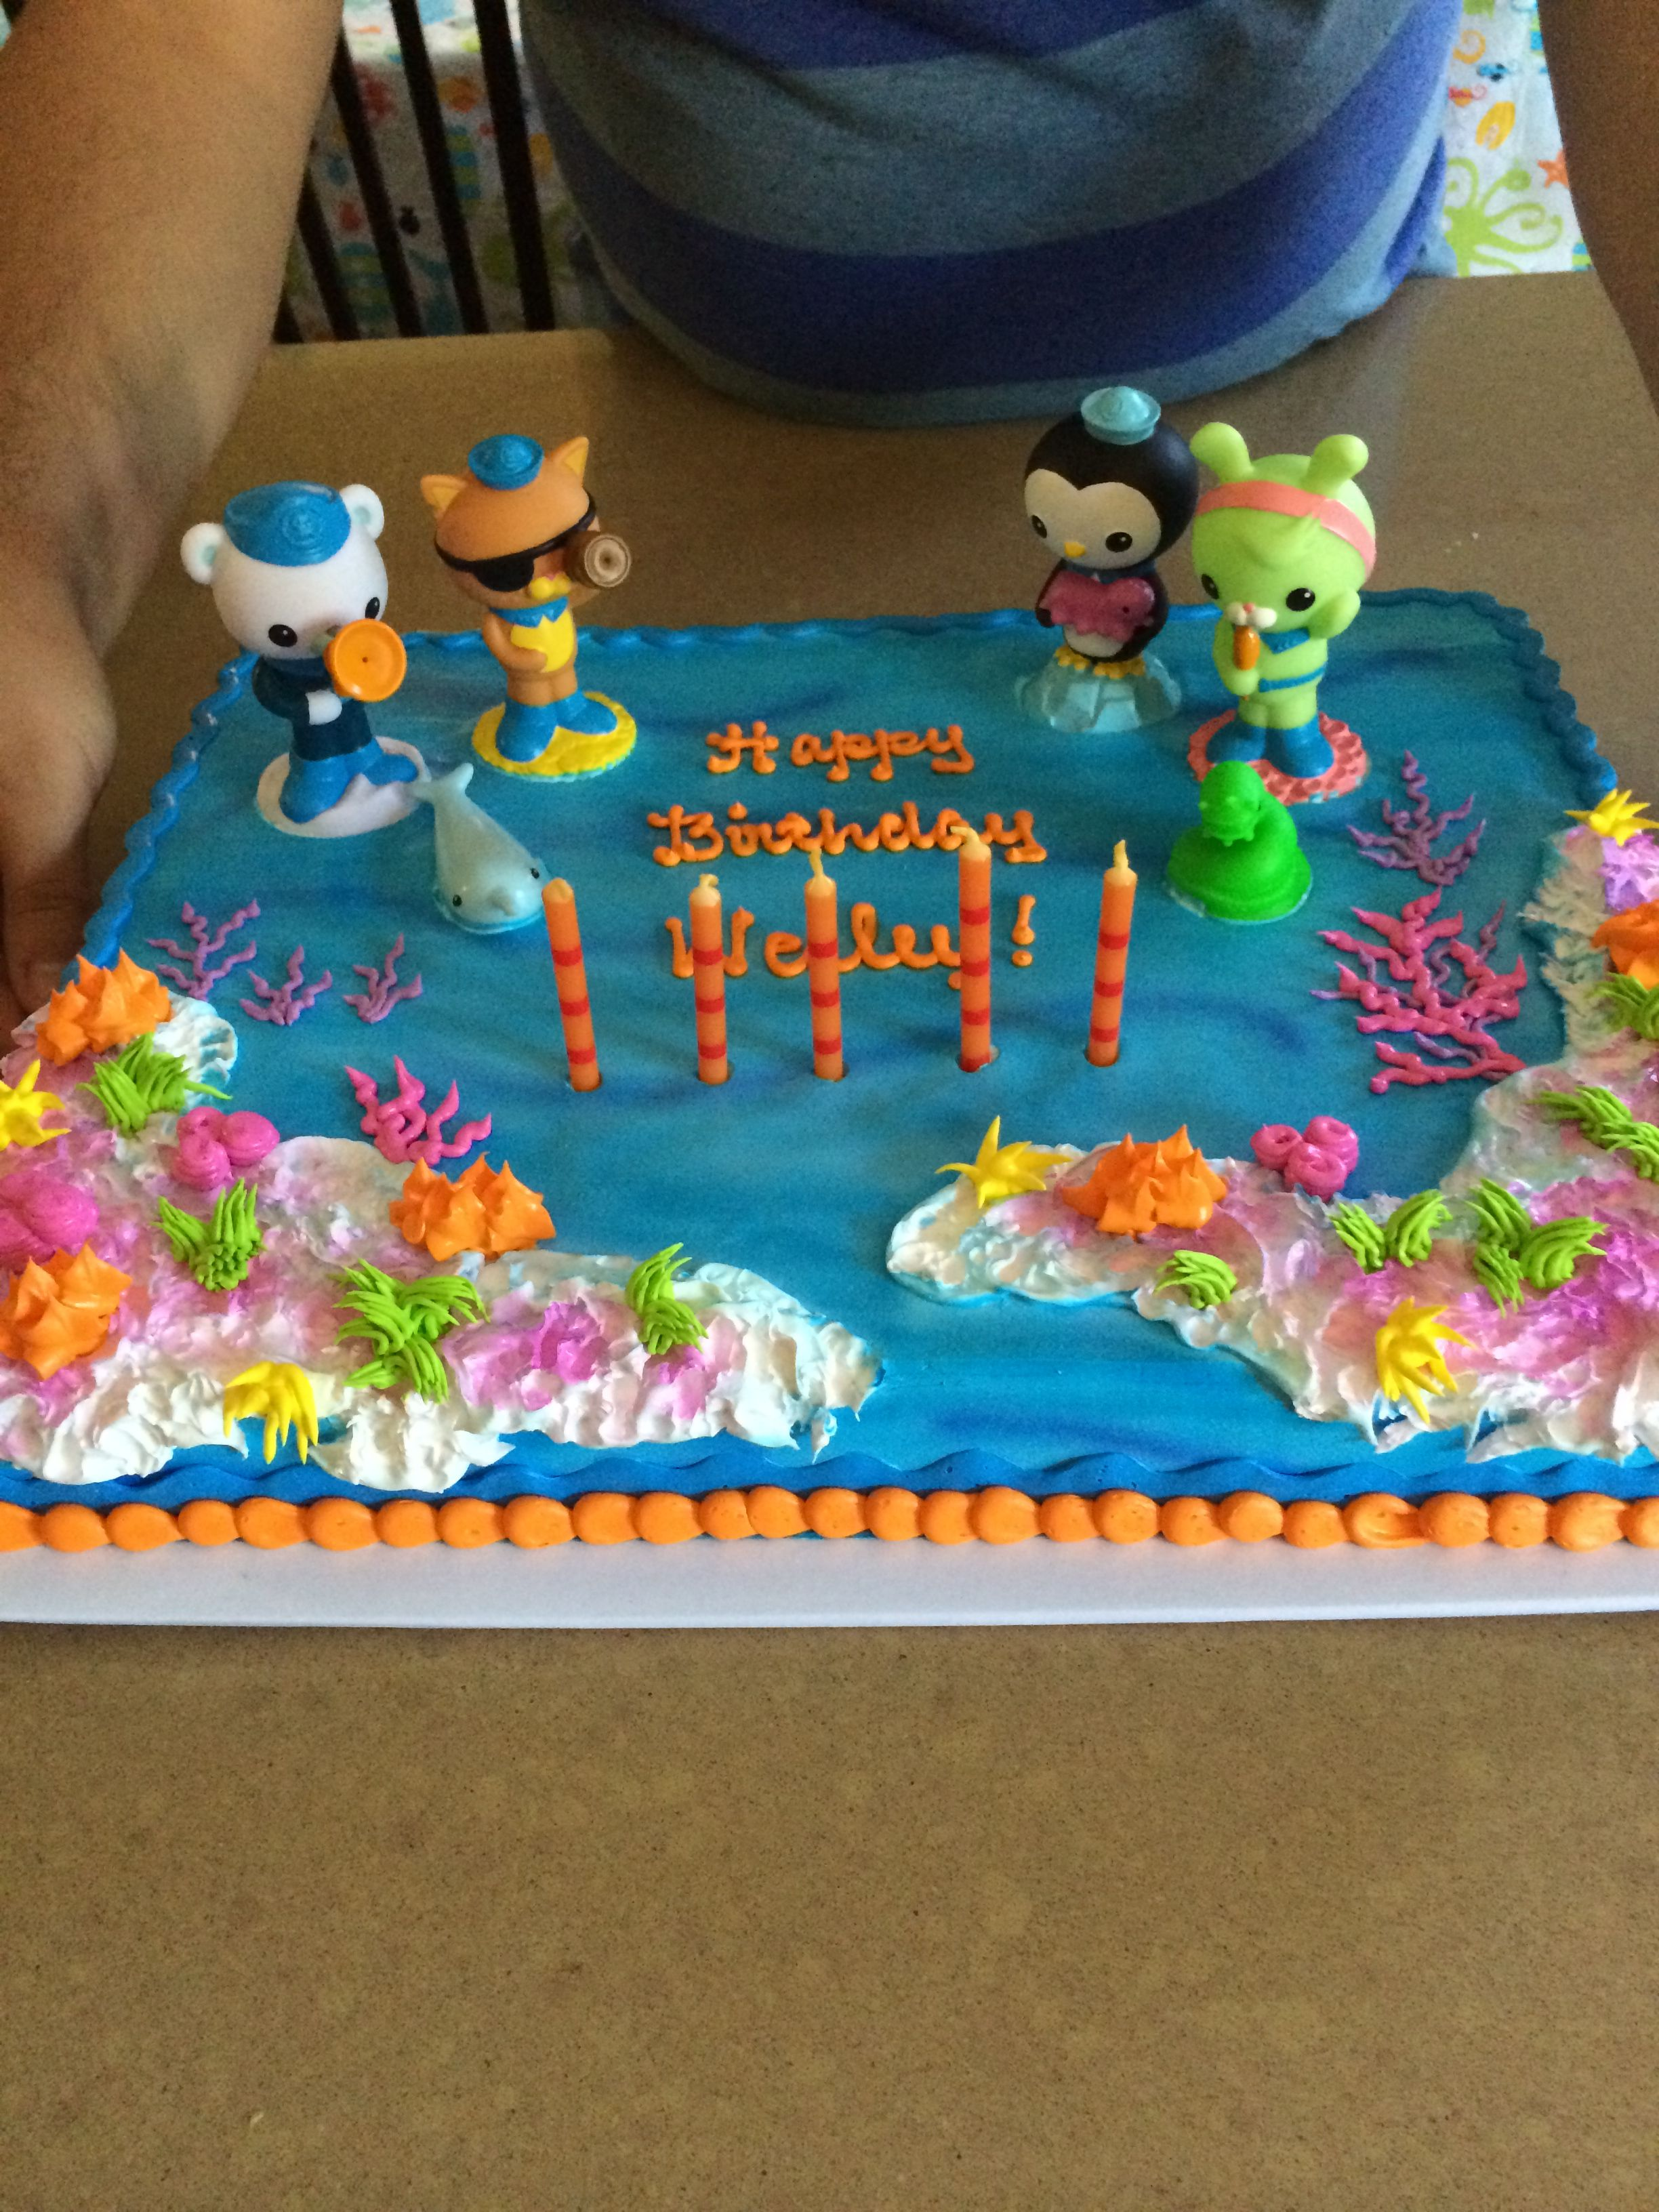 Finding nemo cake from target with octonaut squirters